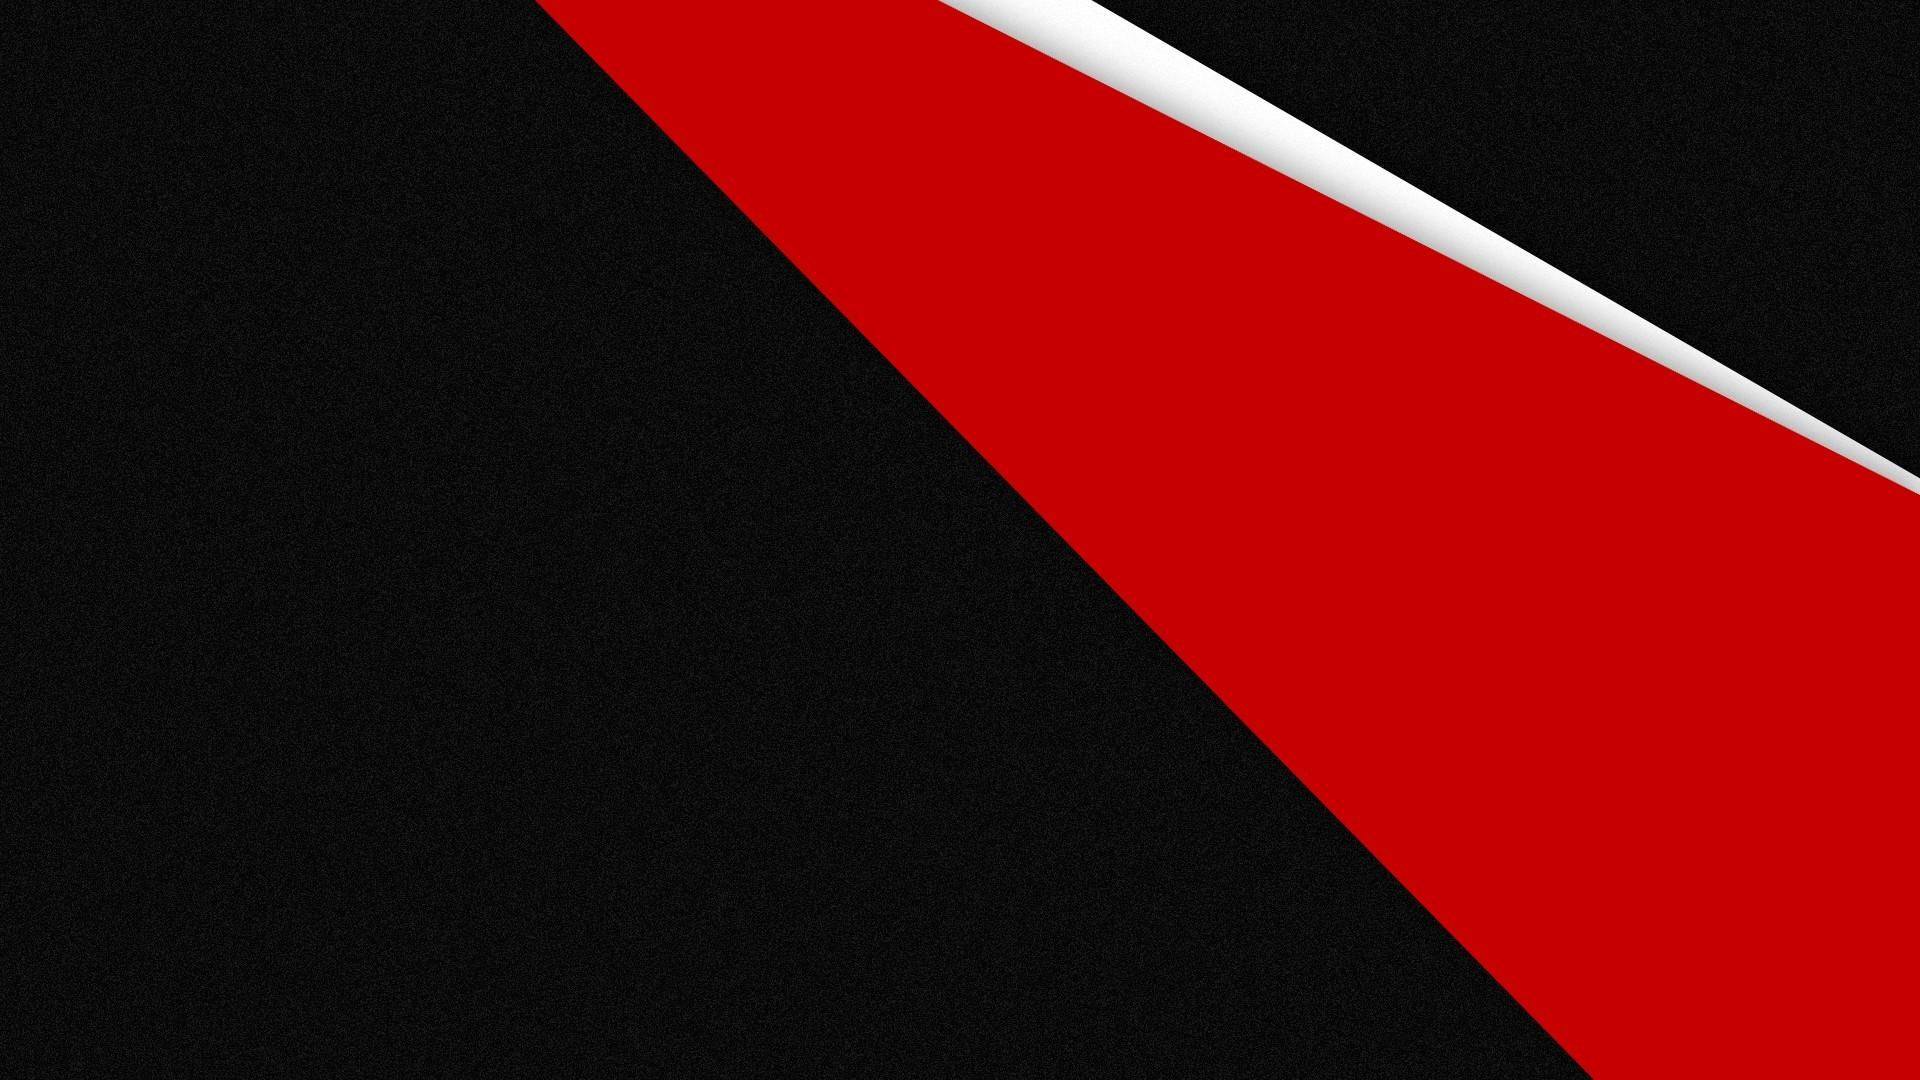 Black and Red Geometric Wallpapers - Top Free Black and ...